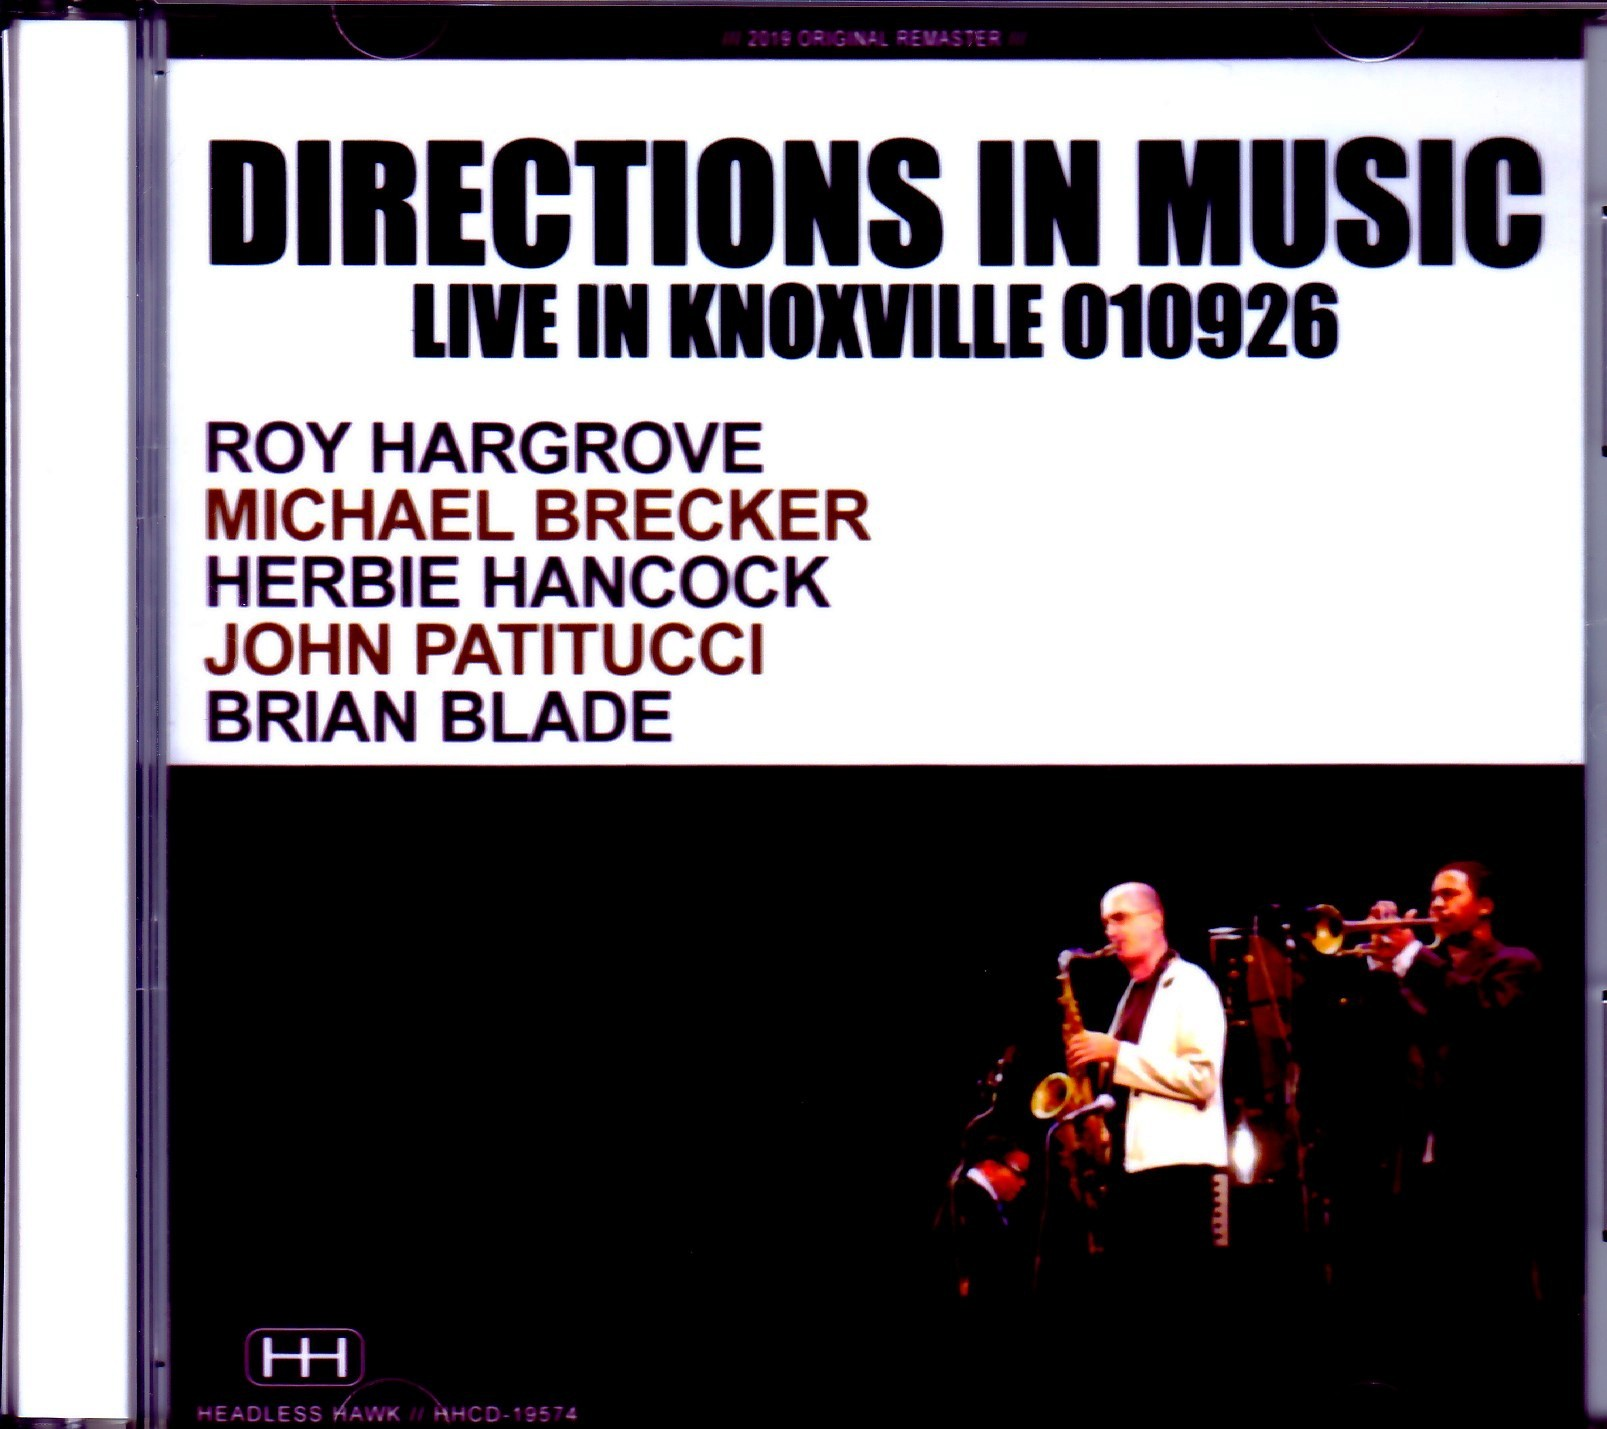 Directions in Music Roy Hargrove,Michael Brecker,Herbie Hancock,John Patitucci,Brian Blade/TN,USA 2001